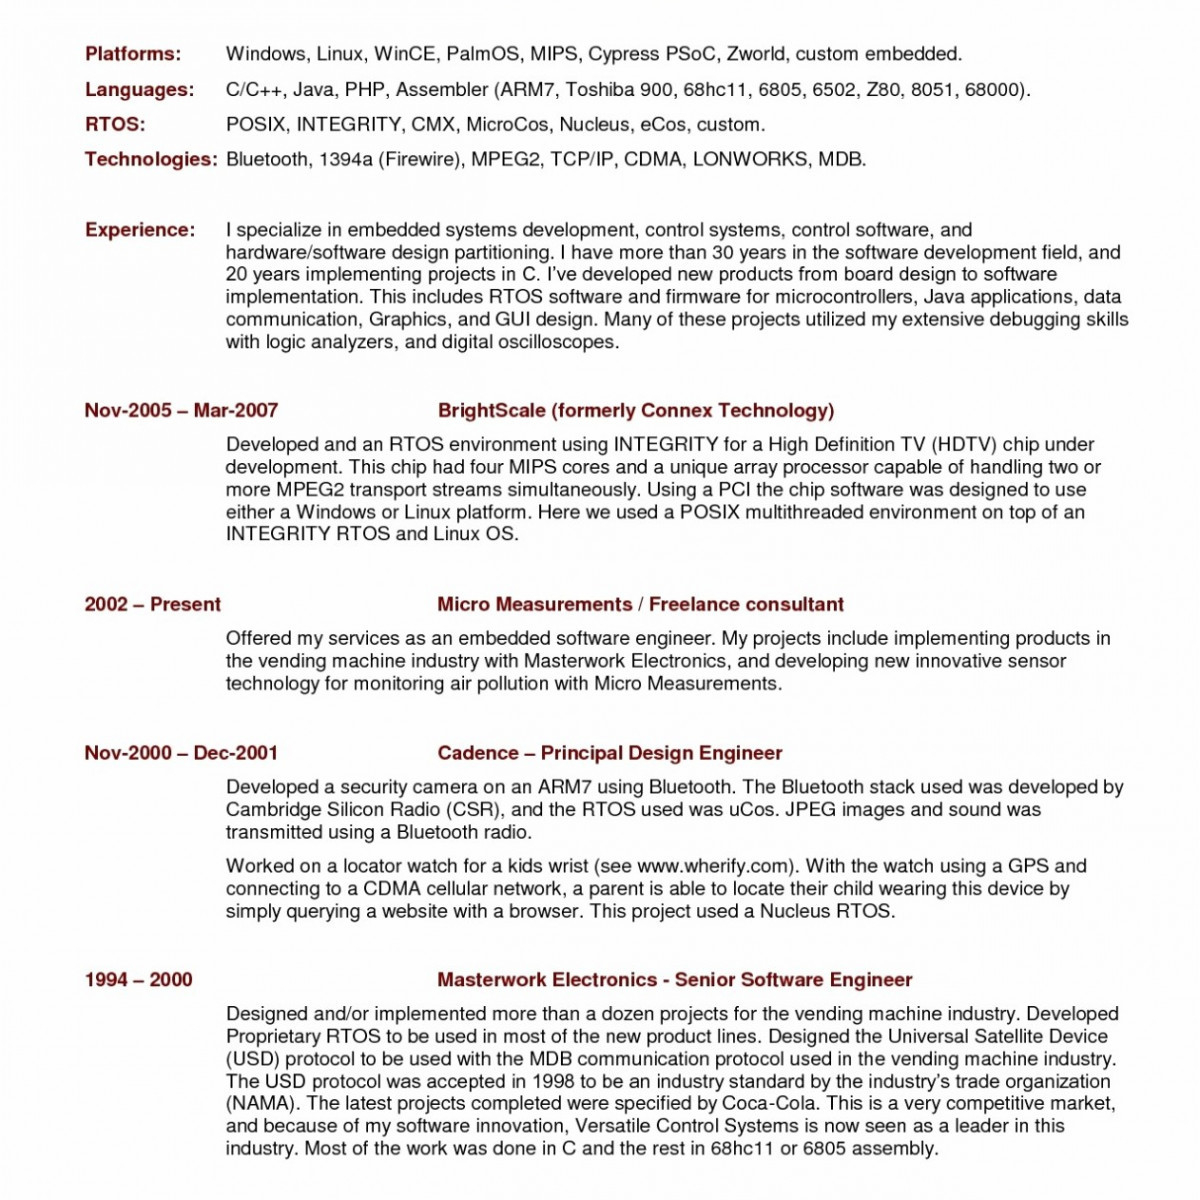 controller resume template example-Resume It Dazzling It Resume Sample Pr Resume Template Elegant Dictionary Template 0d 14-a